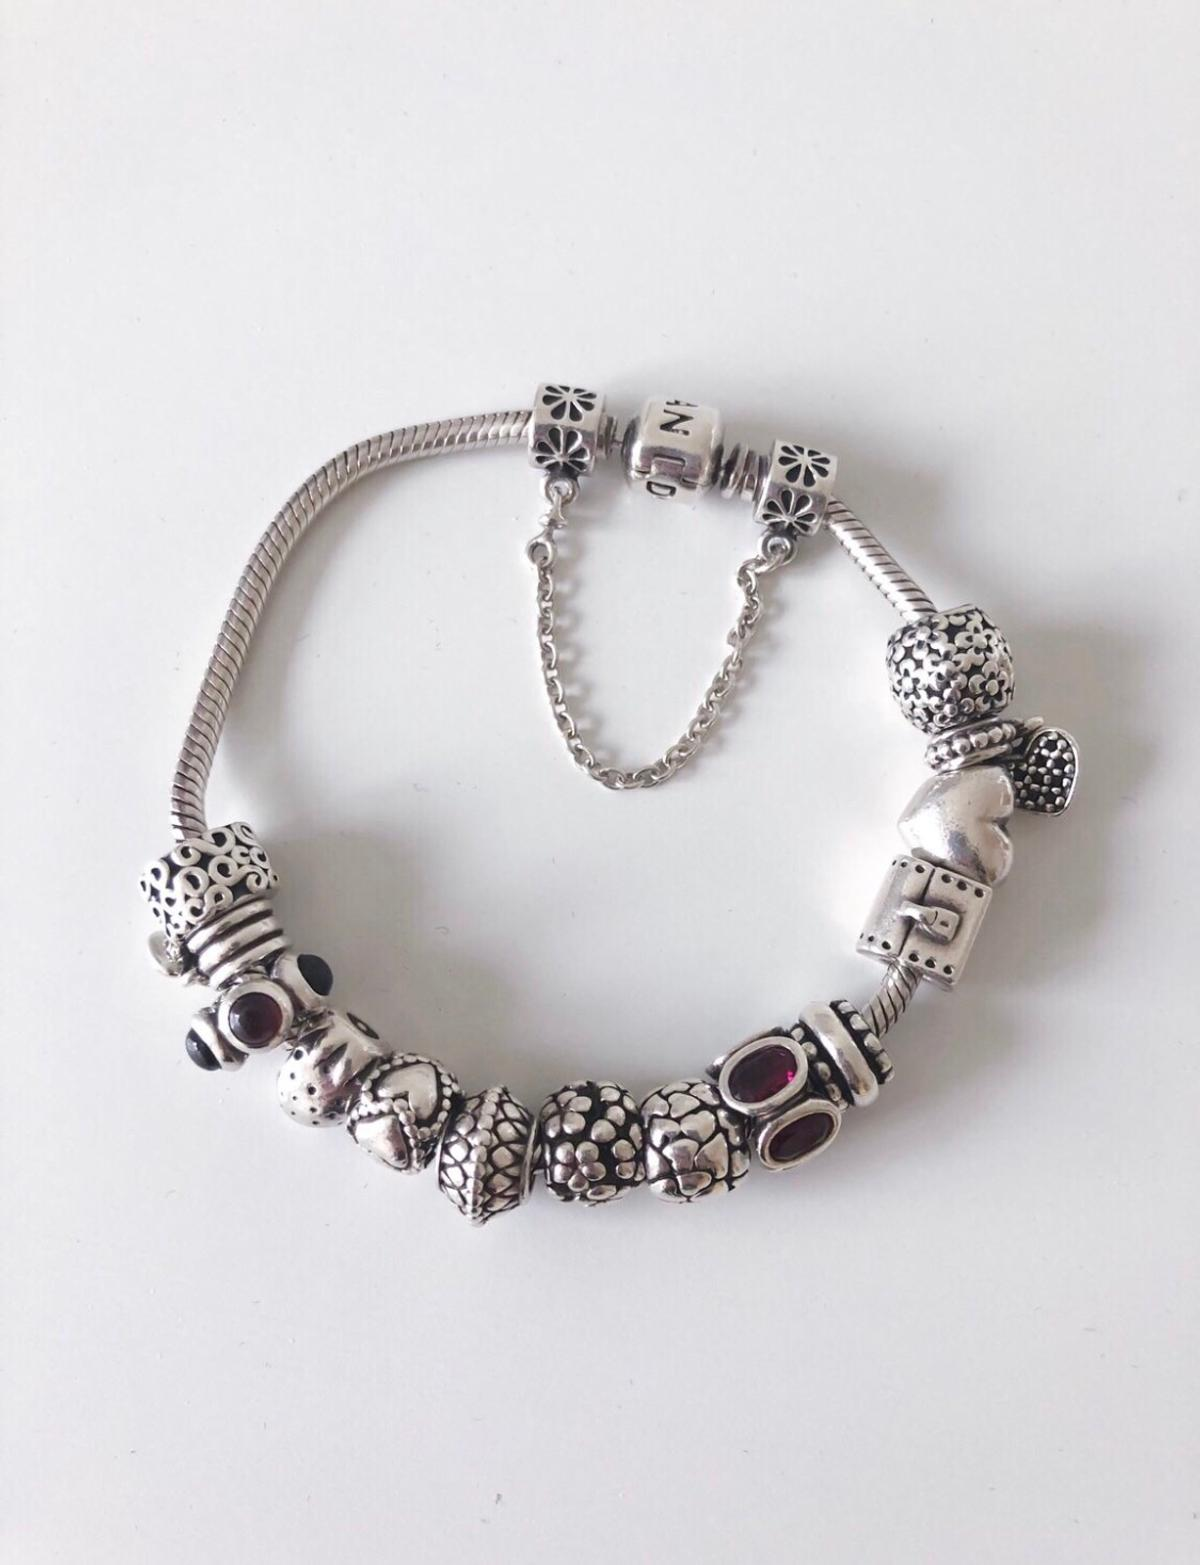 12ecb3132 Pandora Bracelet Genuine with 14 Charms in Wigan for £105.00 for ...